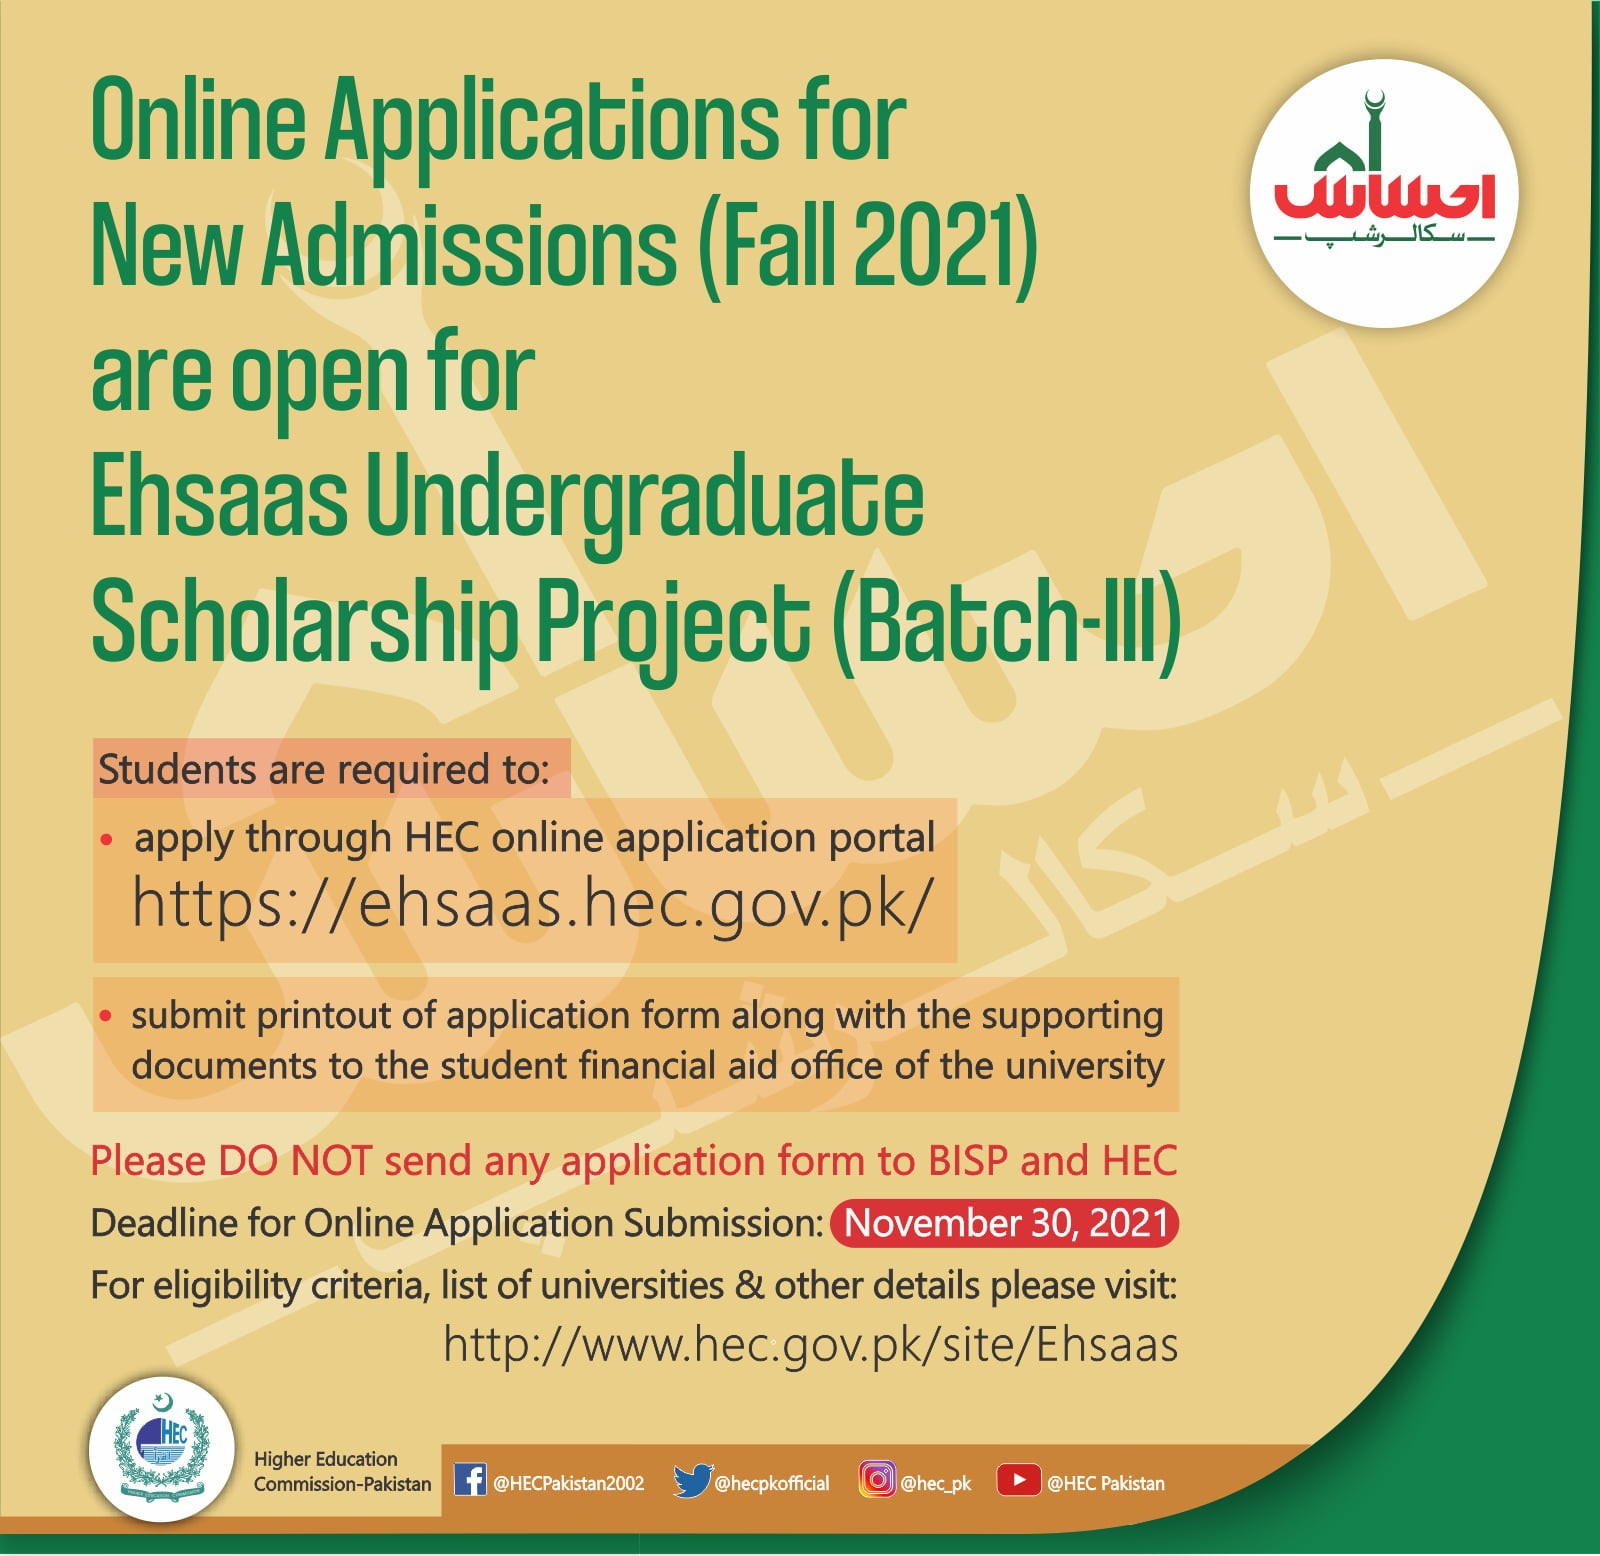 Apply Online for Ehsaas Undergraduate Scholarships New Admissions Fall 2021